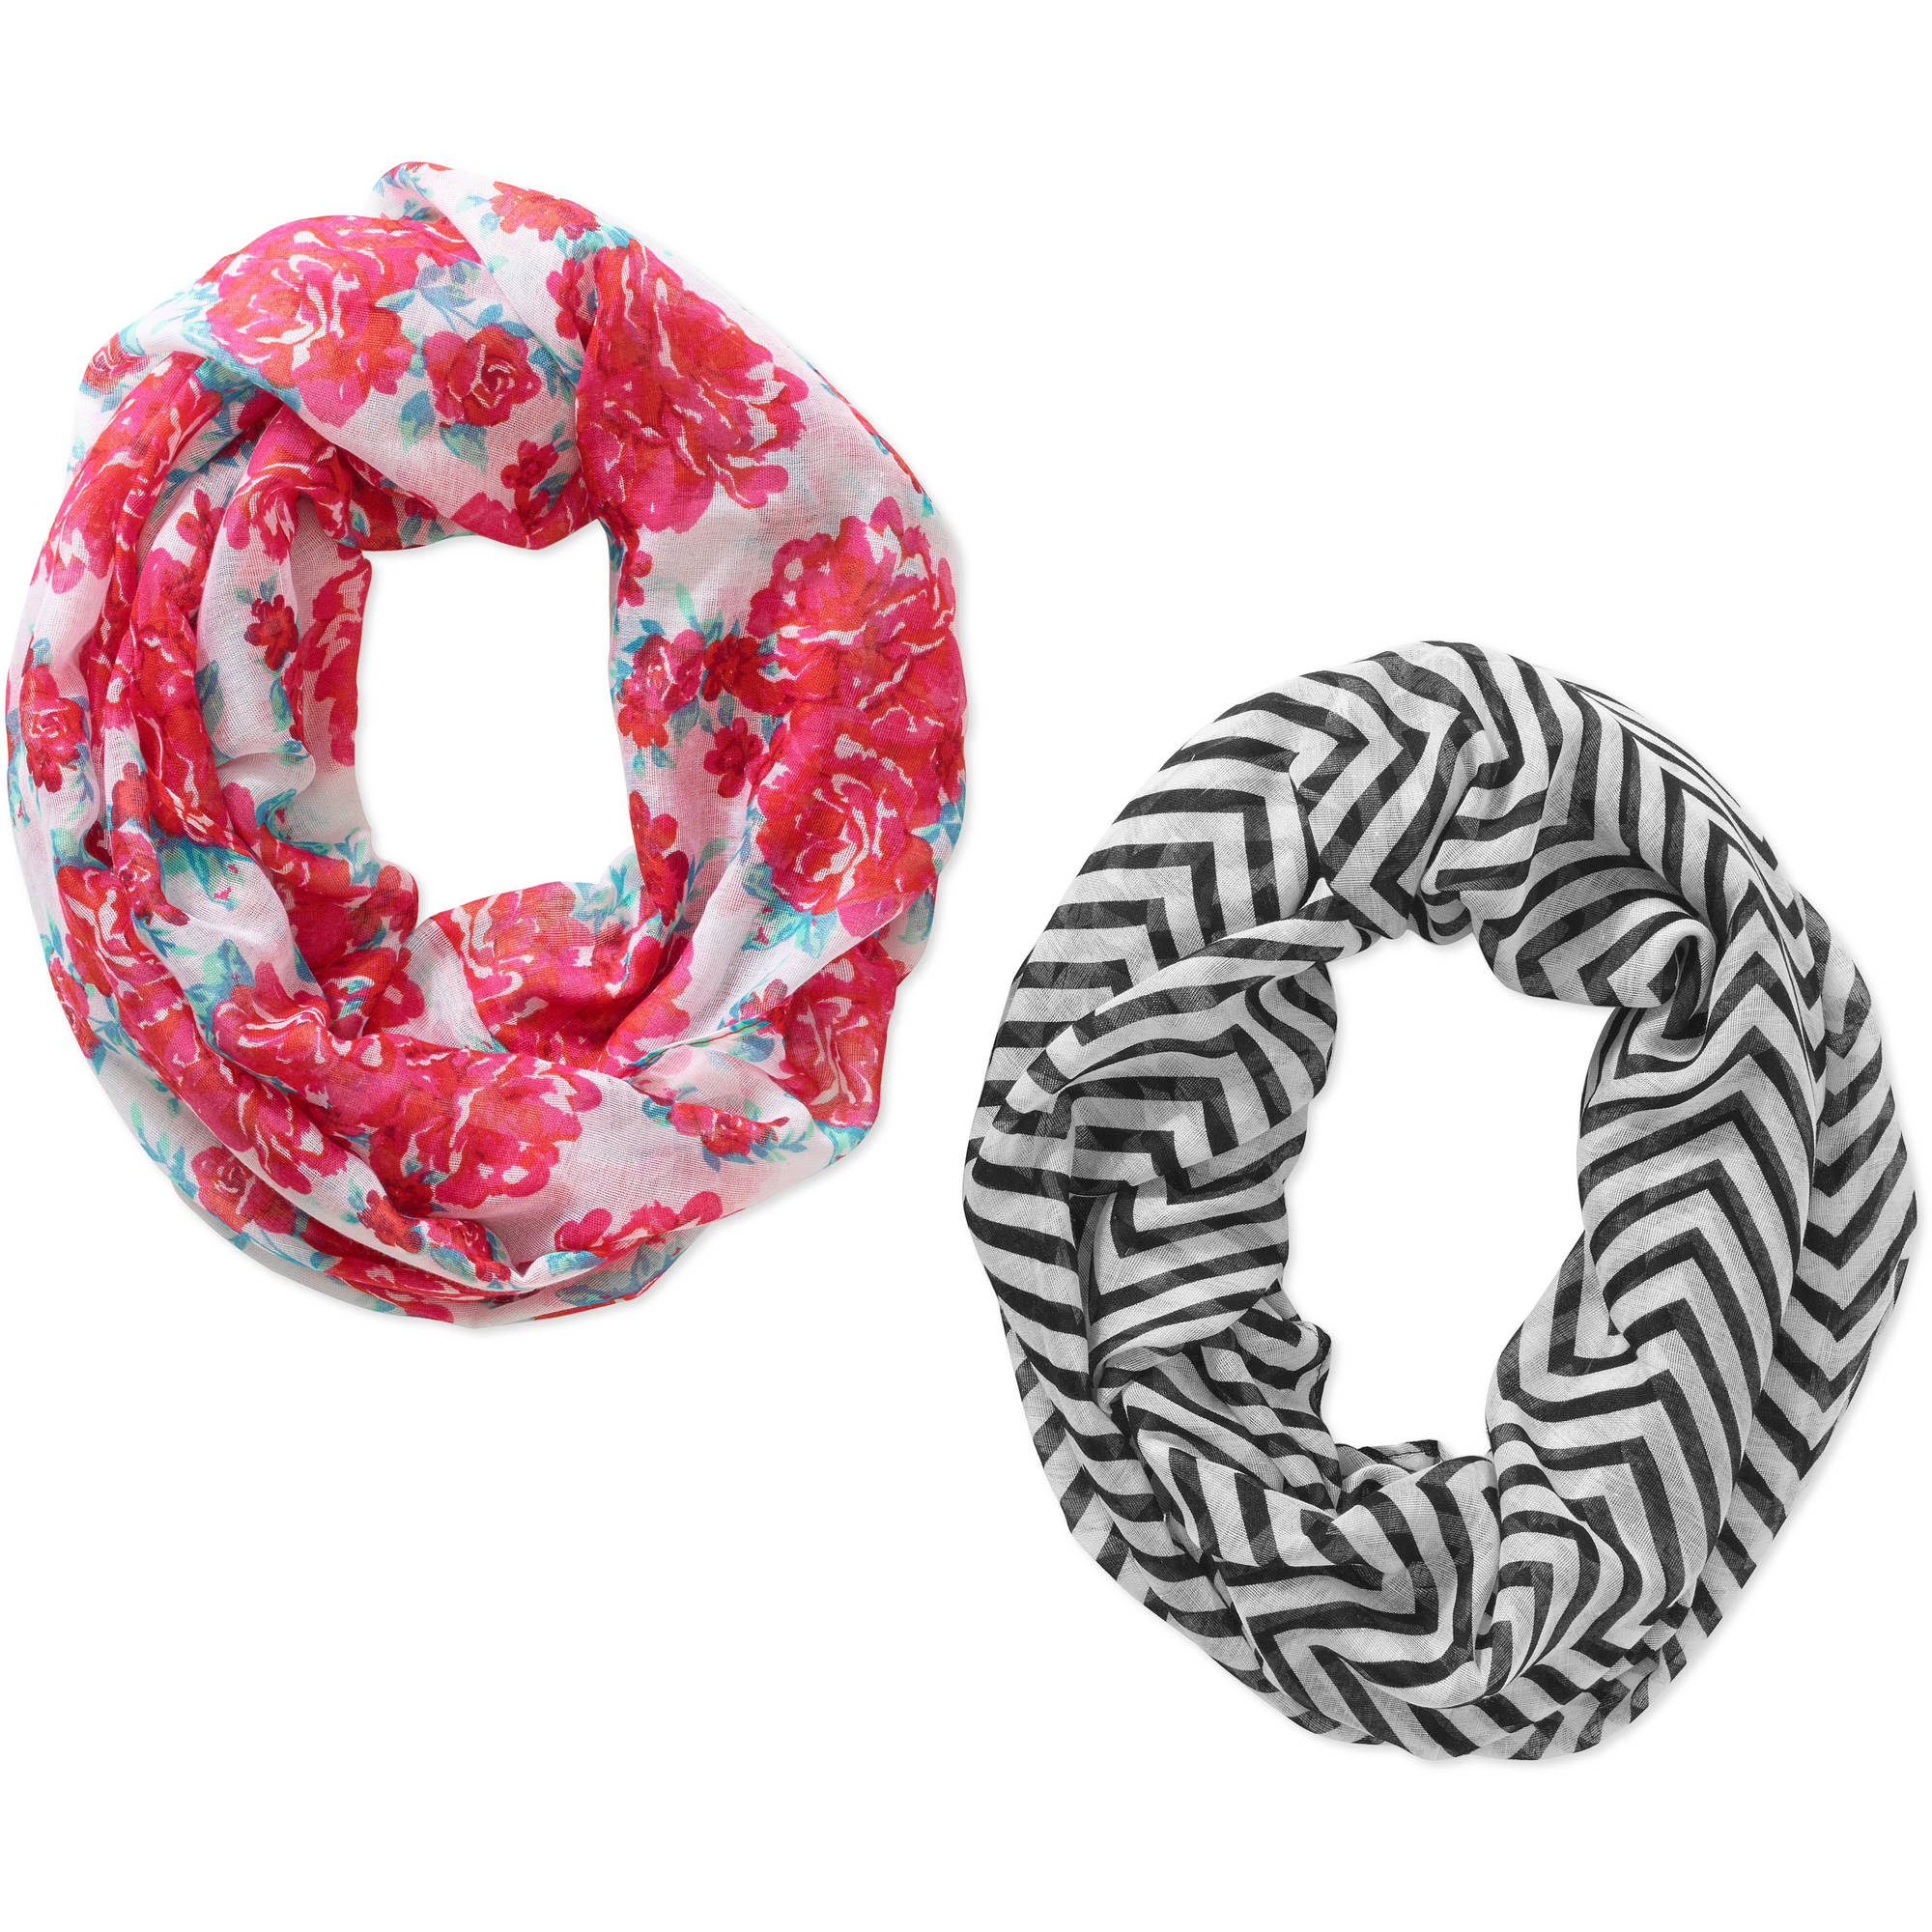 Faded Glory Women's Infinity LoopScarf, 2 Pack